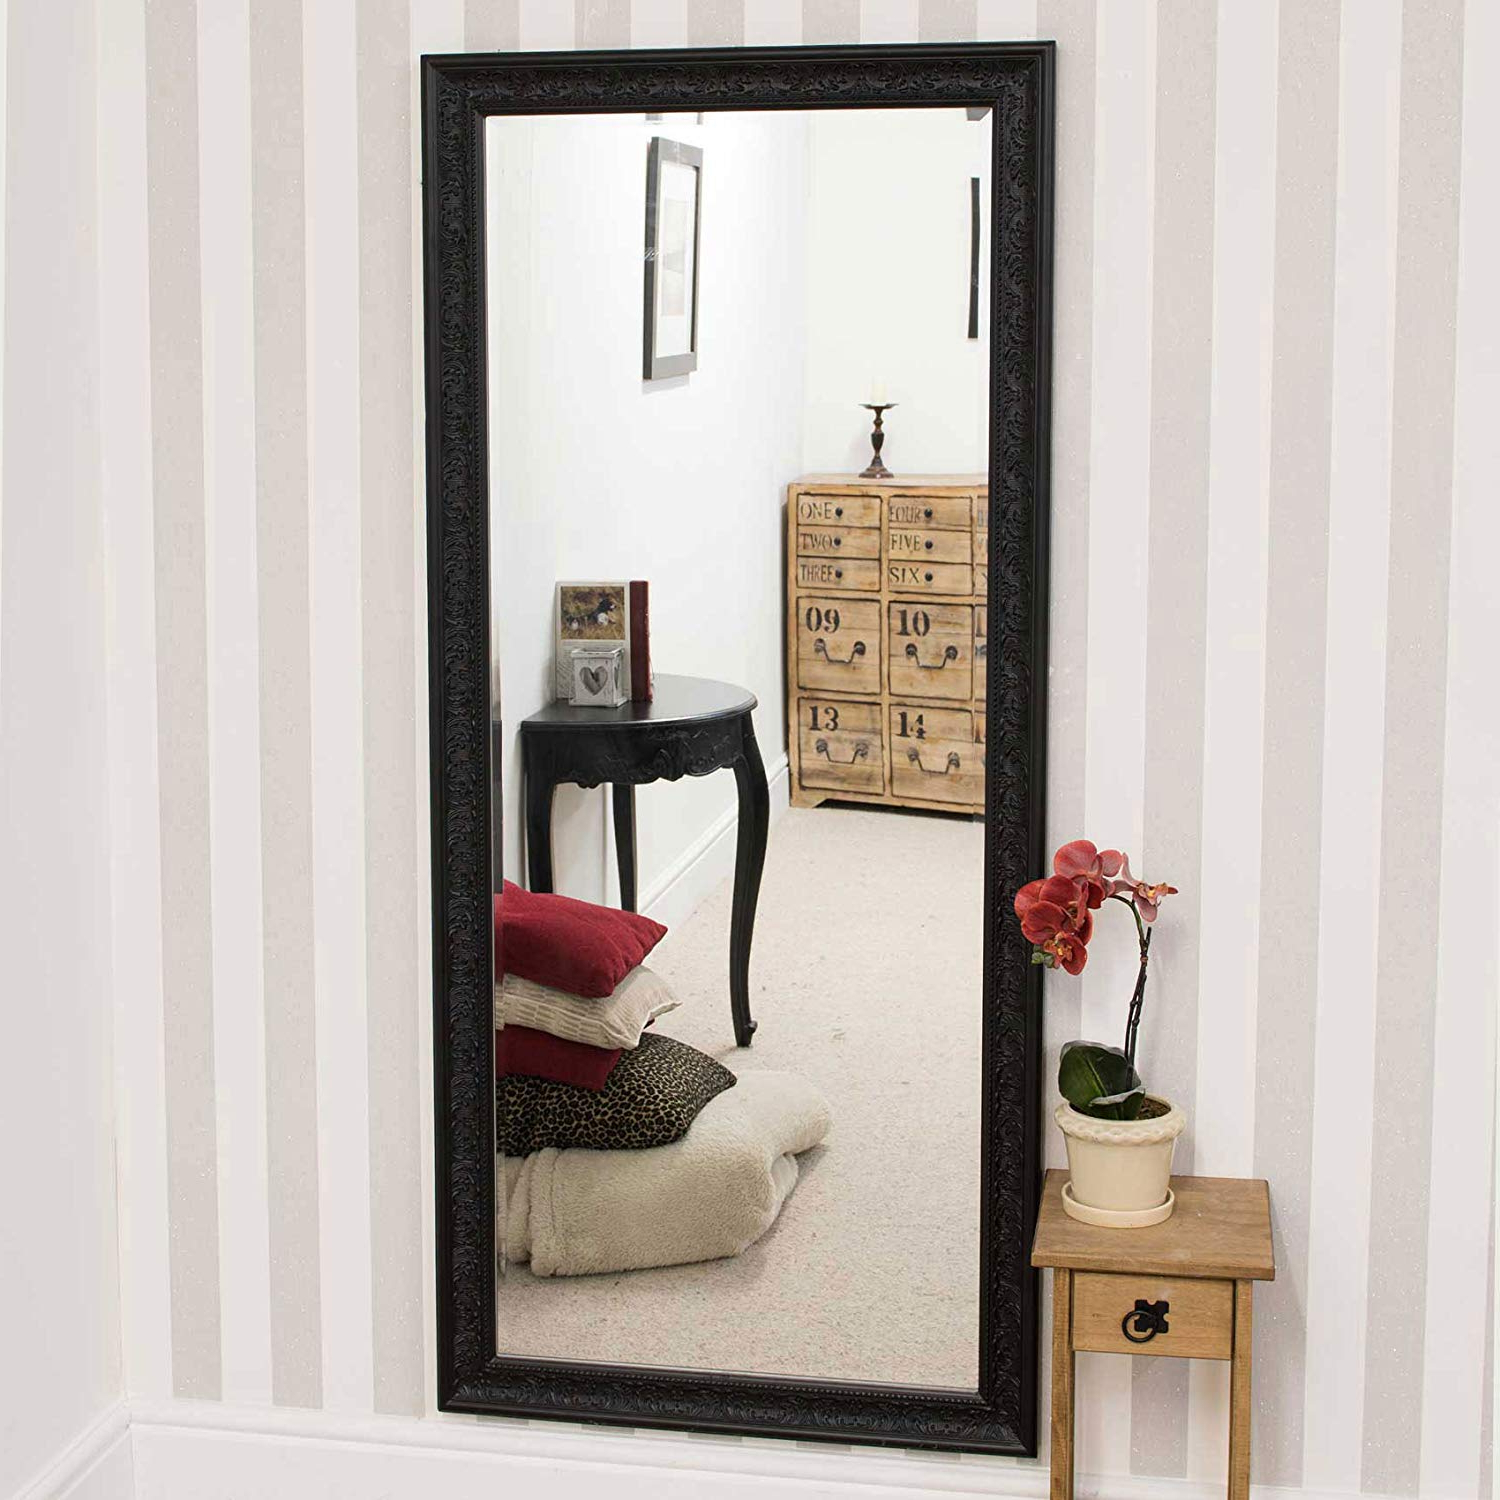 Large Antique Design Full Length Wall Mirror, Black, 160 X 73 Cm With Regard To Recent Floor Length Wall Mirrors (View 19 of 20)